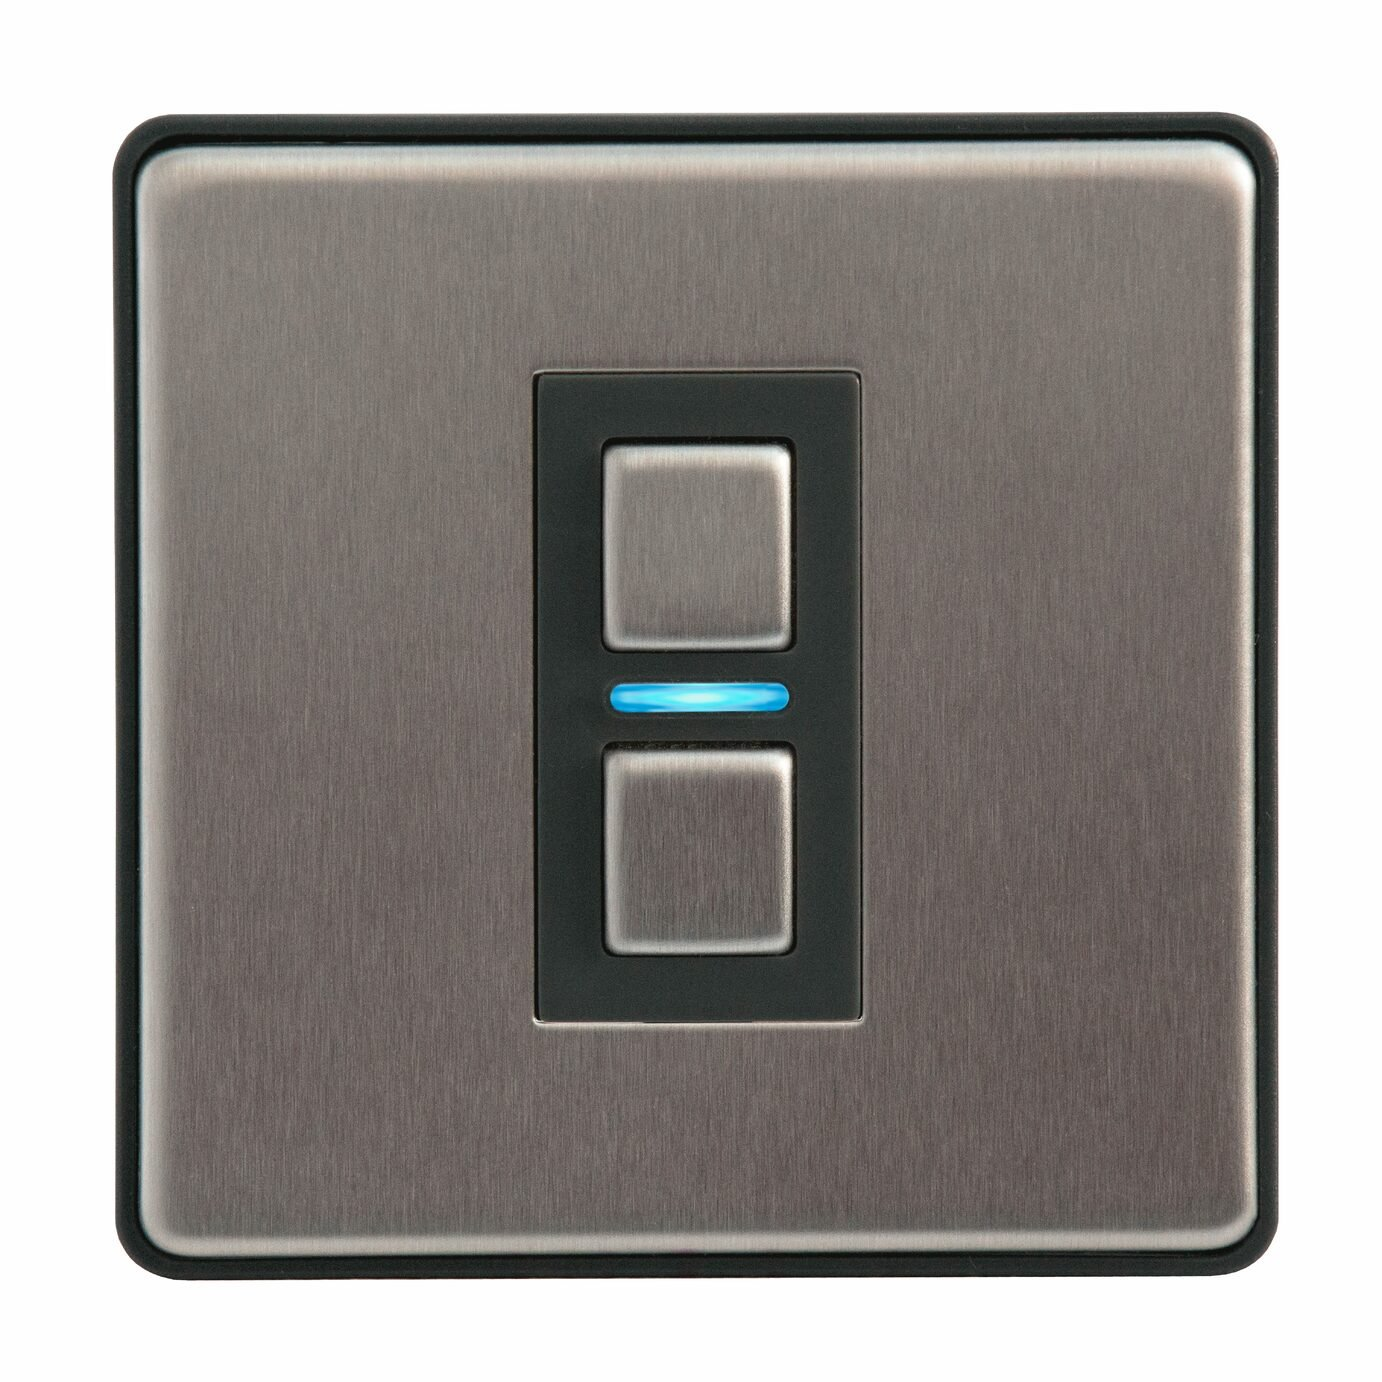 Lightwave Smart Series Dimmer - 1 Gang - Stainless Steel